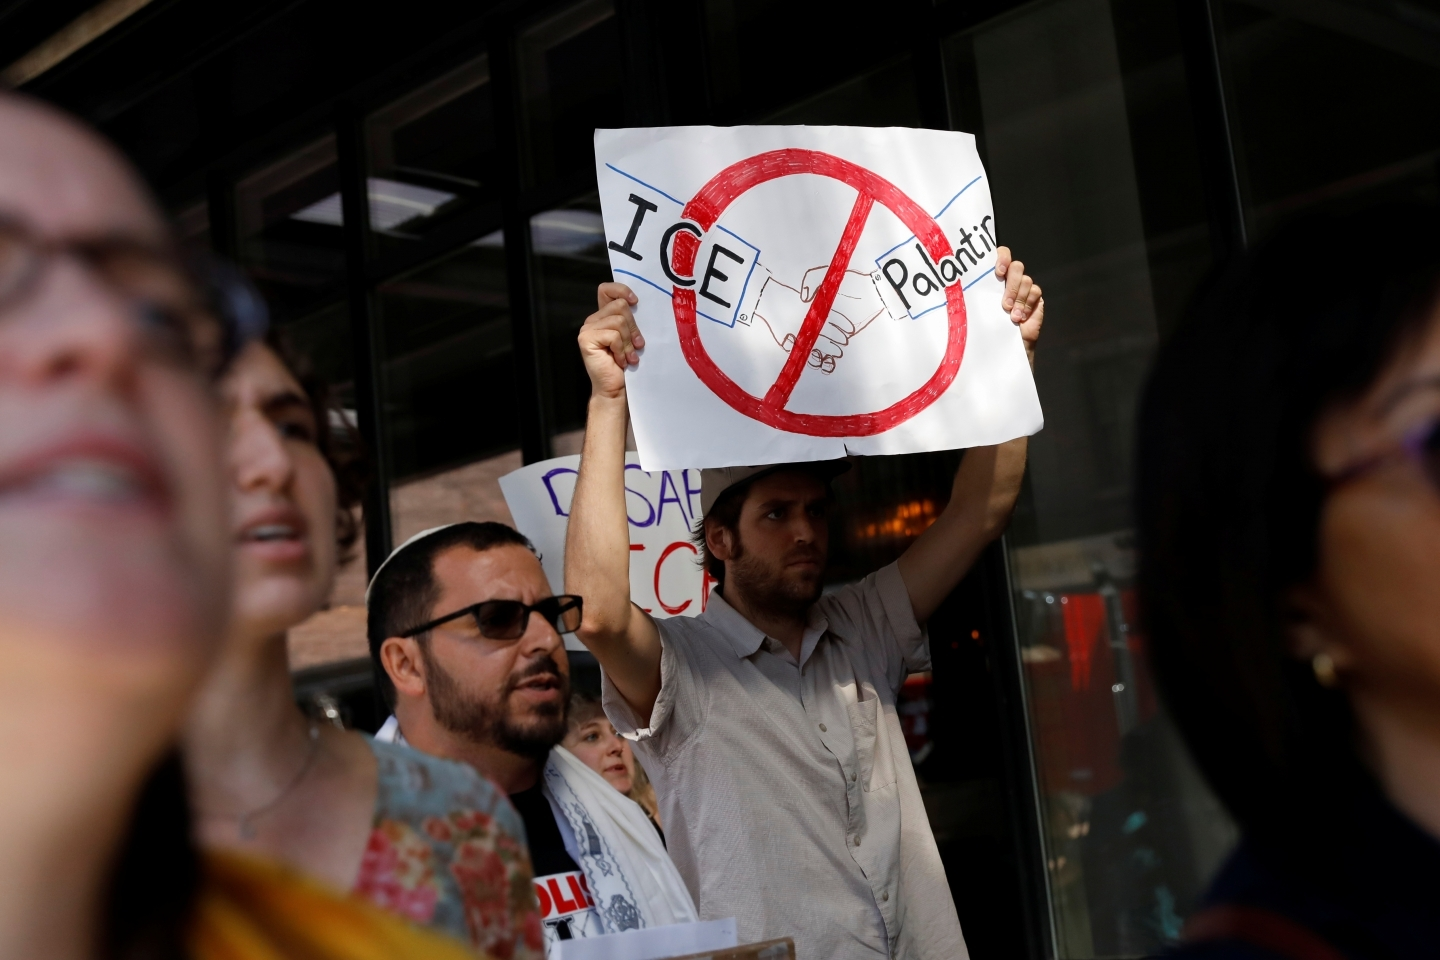 Activists protest outside the Palantir Technologies software company for allegedly helping ICE and the Trump administration in New York City on September 13, 2019. (REUTERS/Shannon Stapleton)